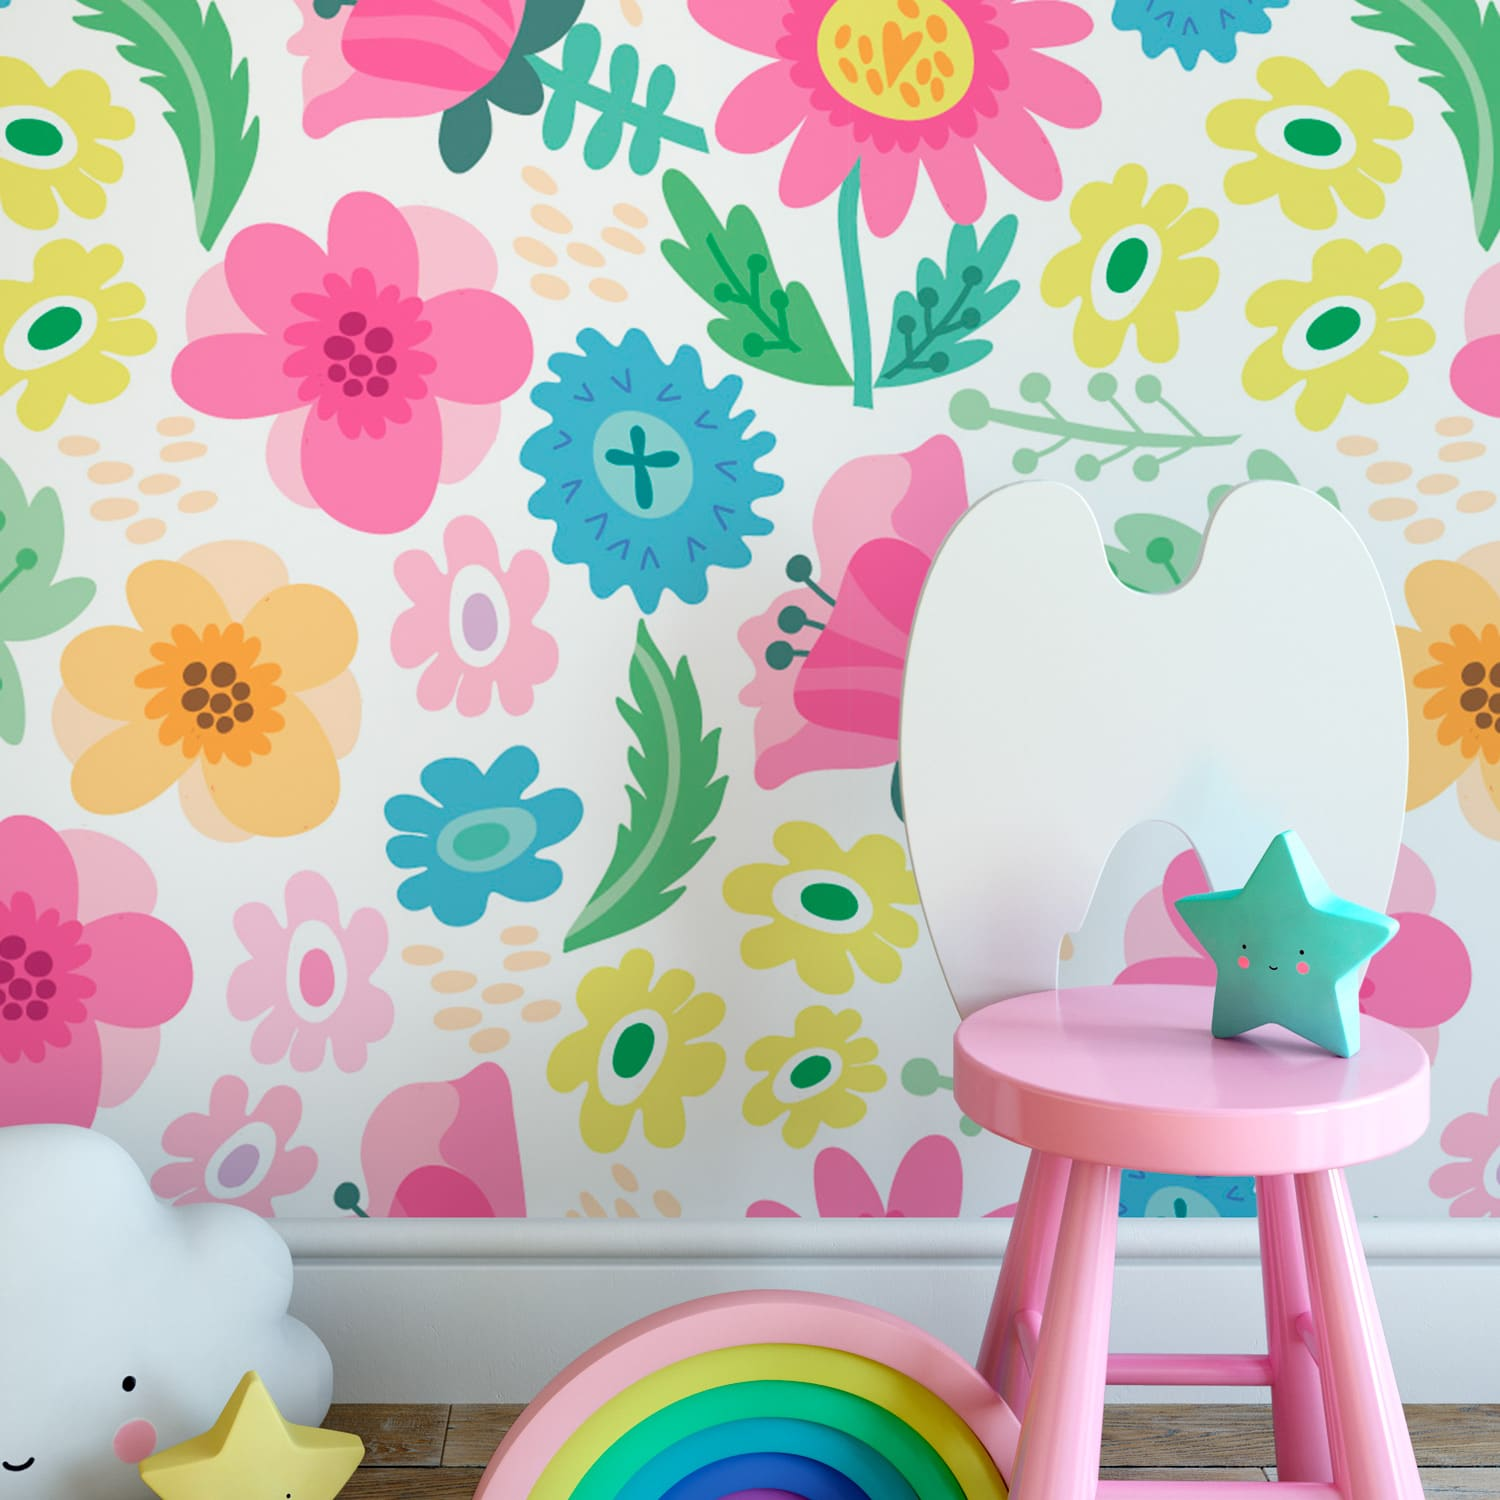 Floral Summer Pattern Wallpaper Moonwallstickers Com